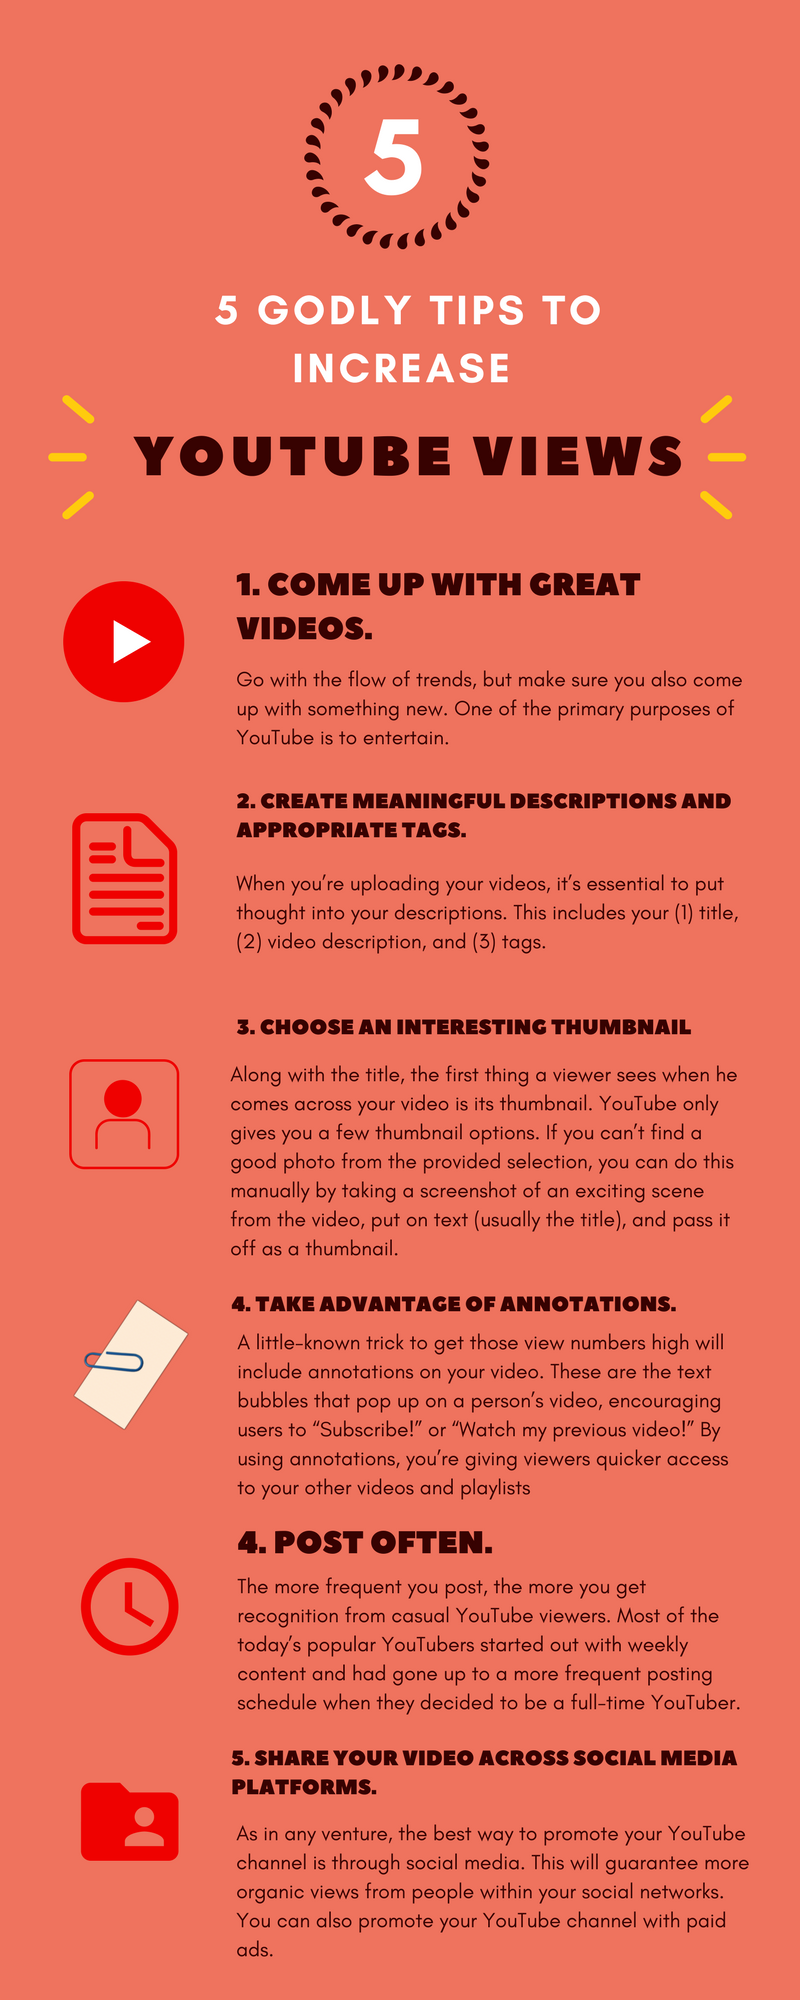 5 Godly Tips To Increase YouTube Views! #youtube